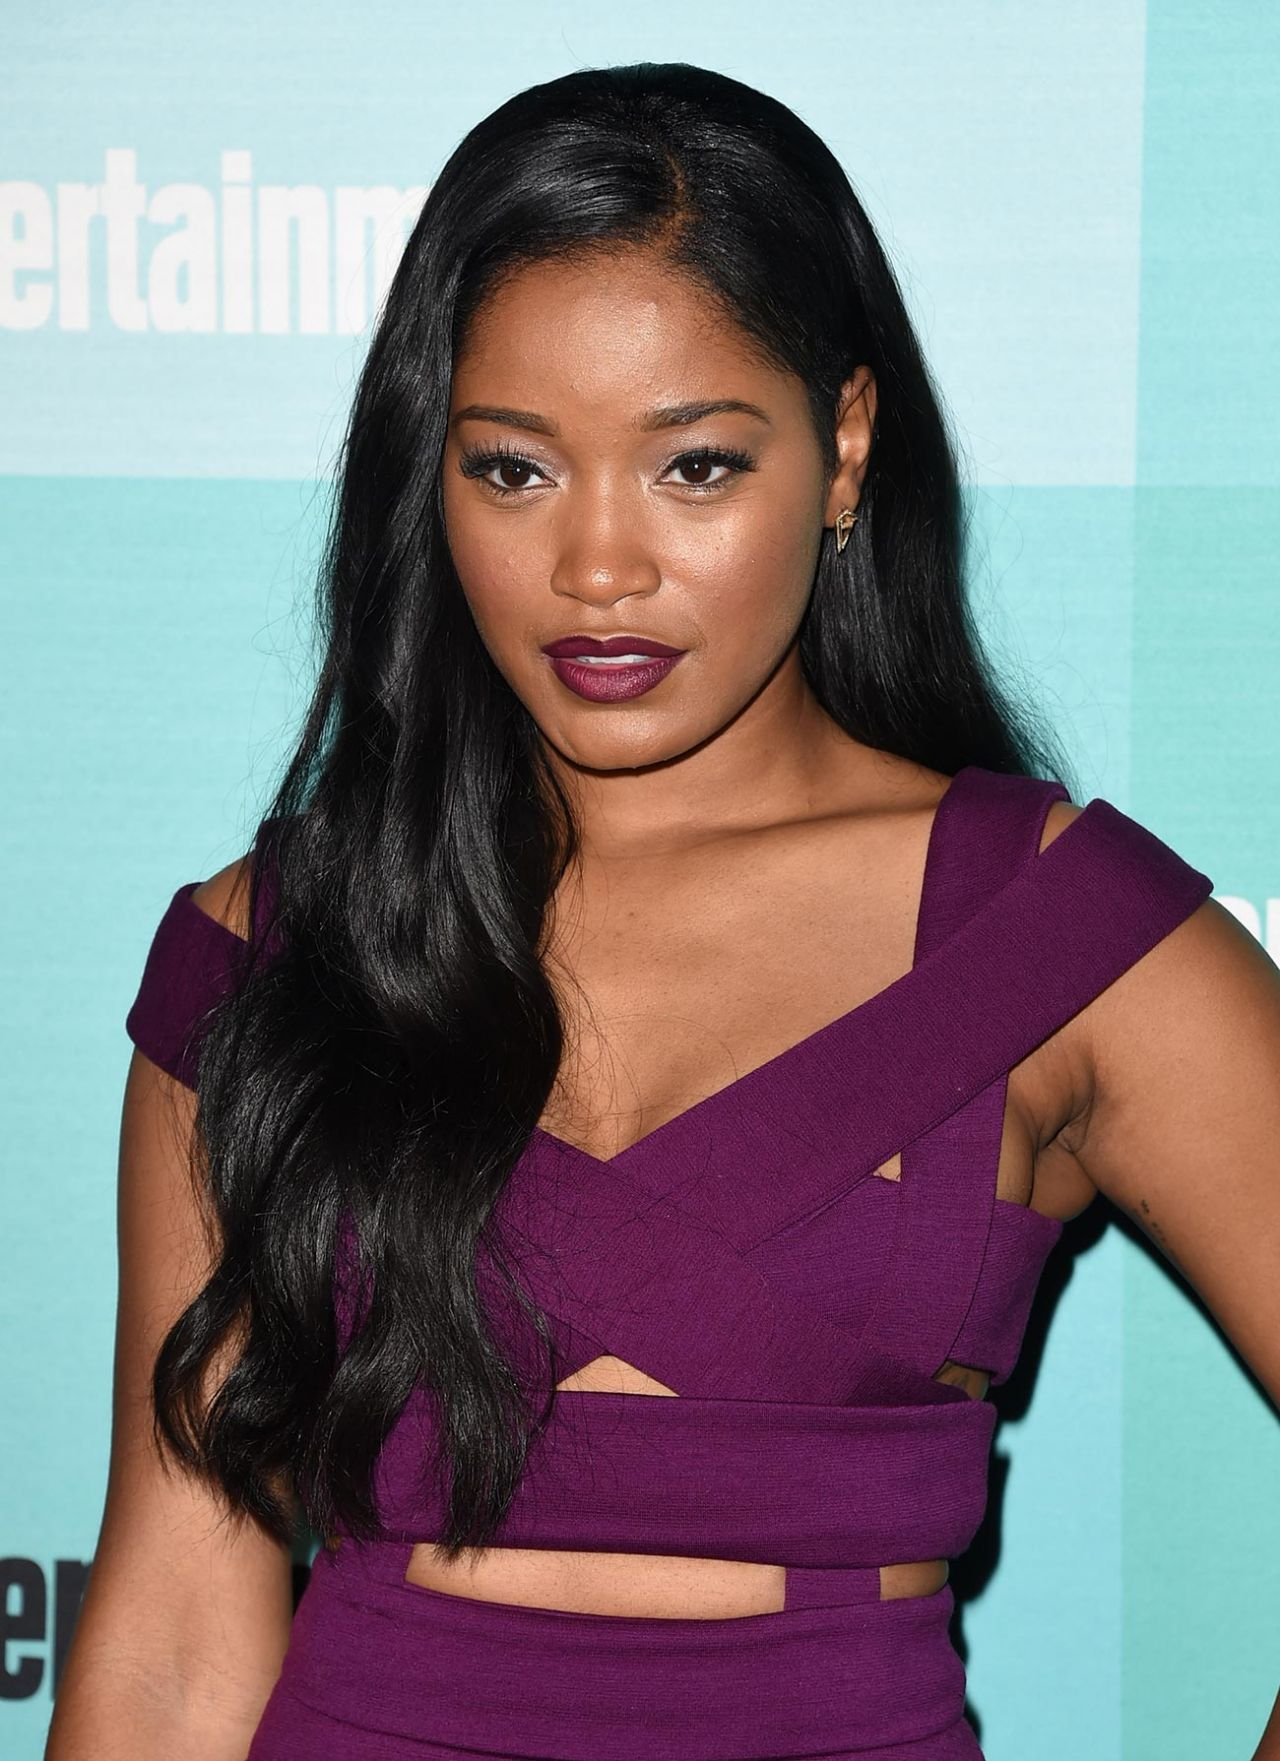 Keke Palmer - Entertainment Weekly Party at Comic-Con ...Keke Palmer Rolling Out